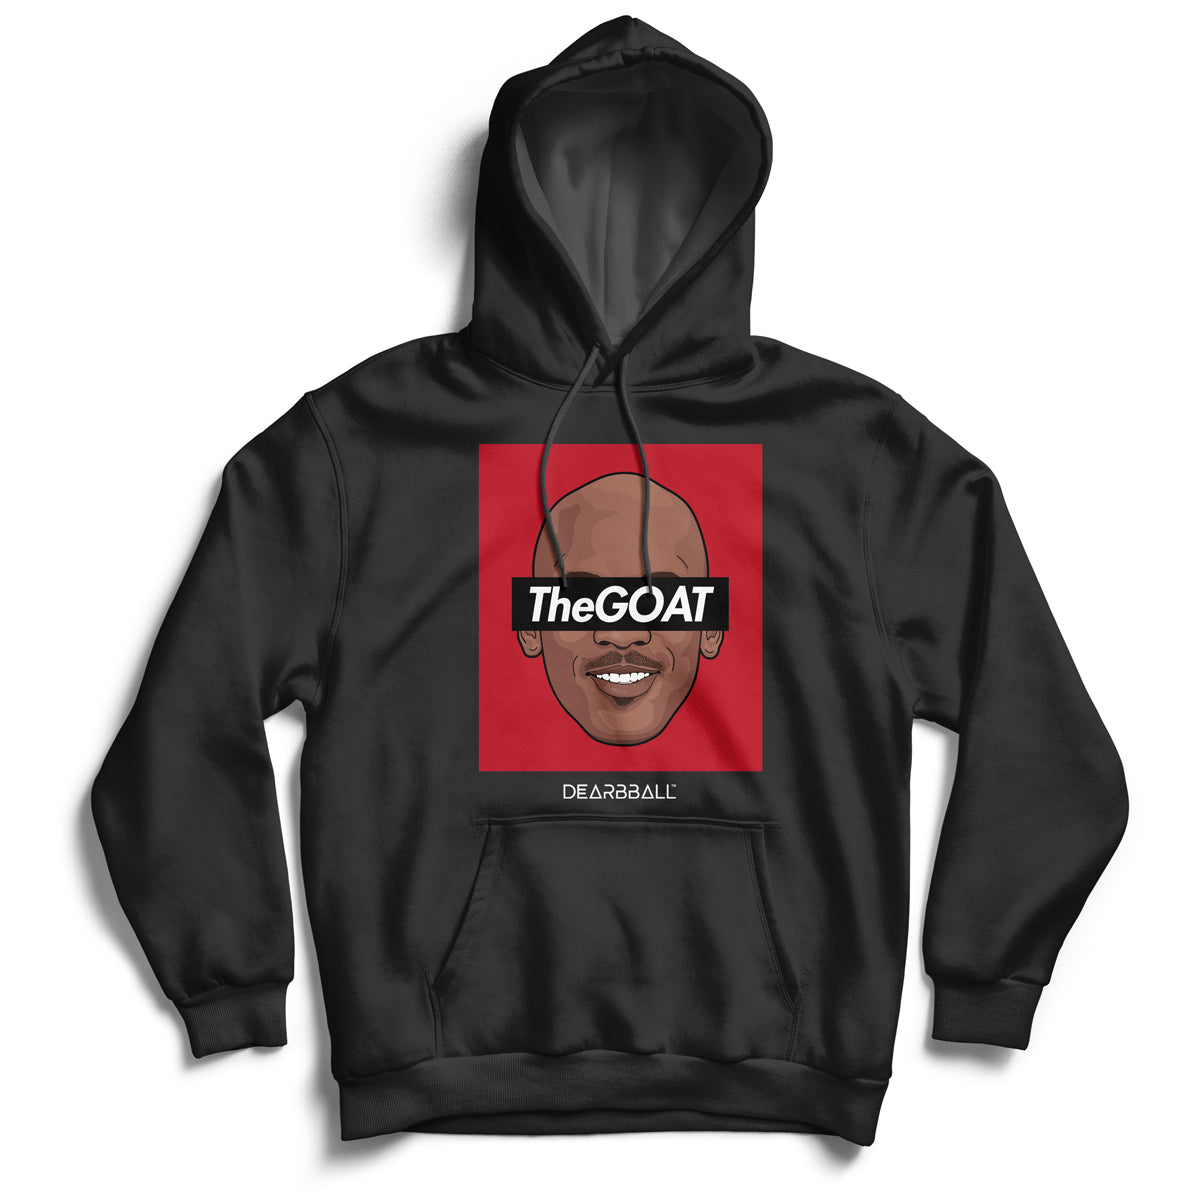 Michael_Jordan_hoodie_tee_goat_chicago_bulls_legends_nba_dunk_dearbball_black